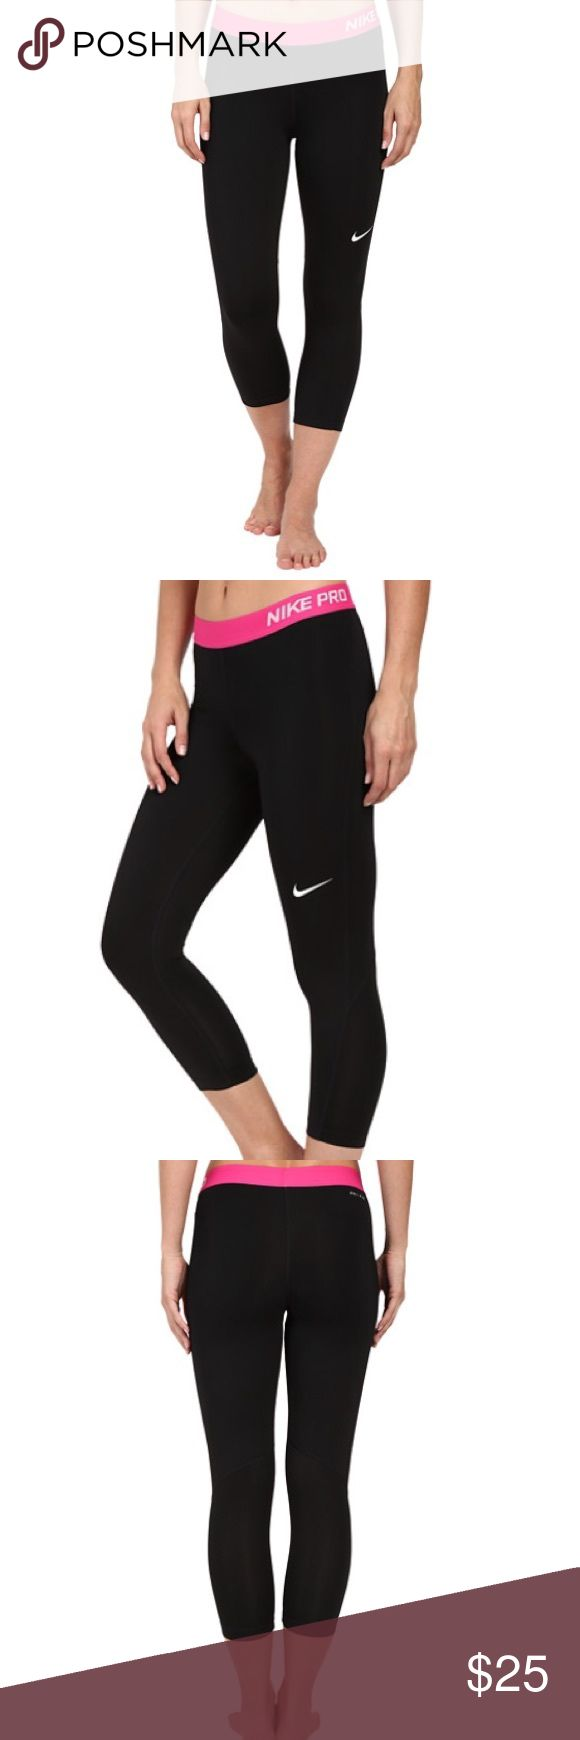 ✔️Nike Pro Cool Training Capris Brand new with tags. Turn up the heat on an otherwise everyday workout with the intense Pro Cool Capri. Compression fit keeps everything tight to the body for maximum support during high-performance activity. Dri-FIT™ high-performance fabric wicks perspiration away from the body and towards the surface where it can evaporate. Elastic waist provides a comfortable fit. Inseam gusset allows a wider range of movement. Mesh panels ventilate and cool. Flat seams…